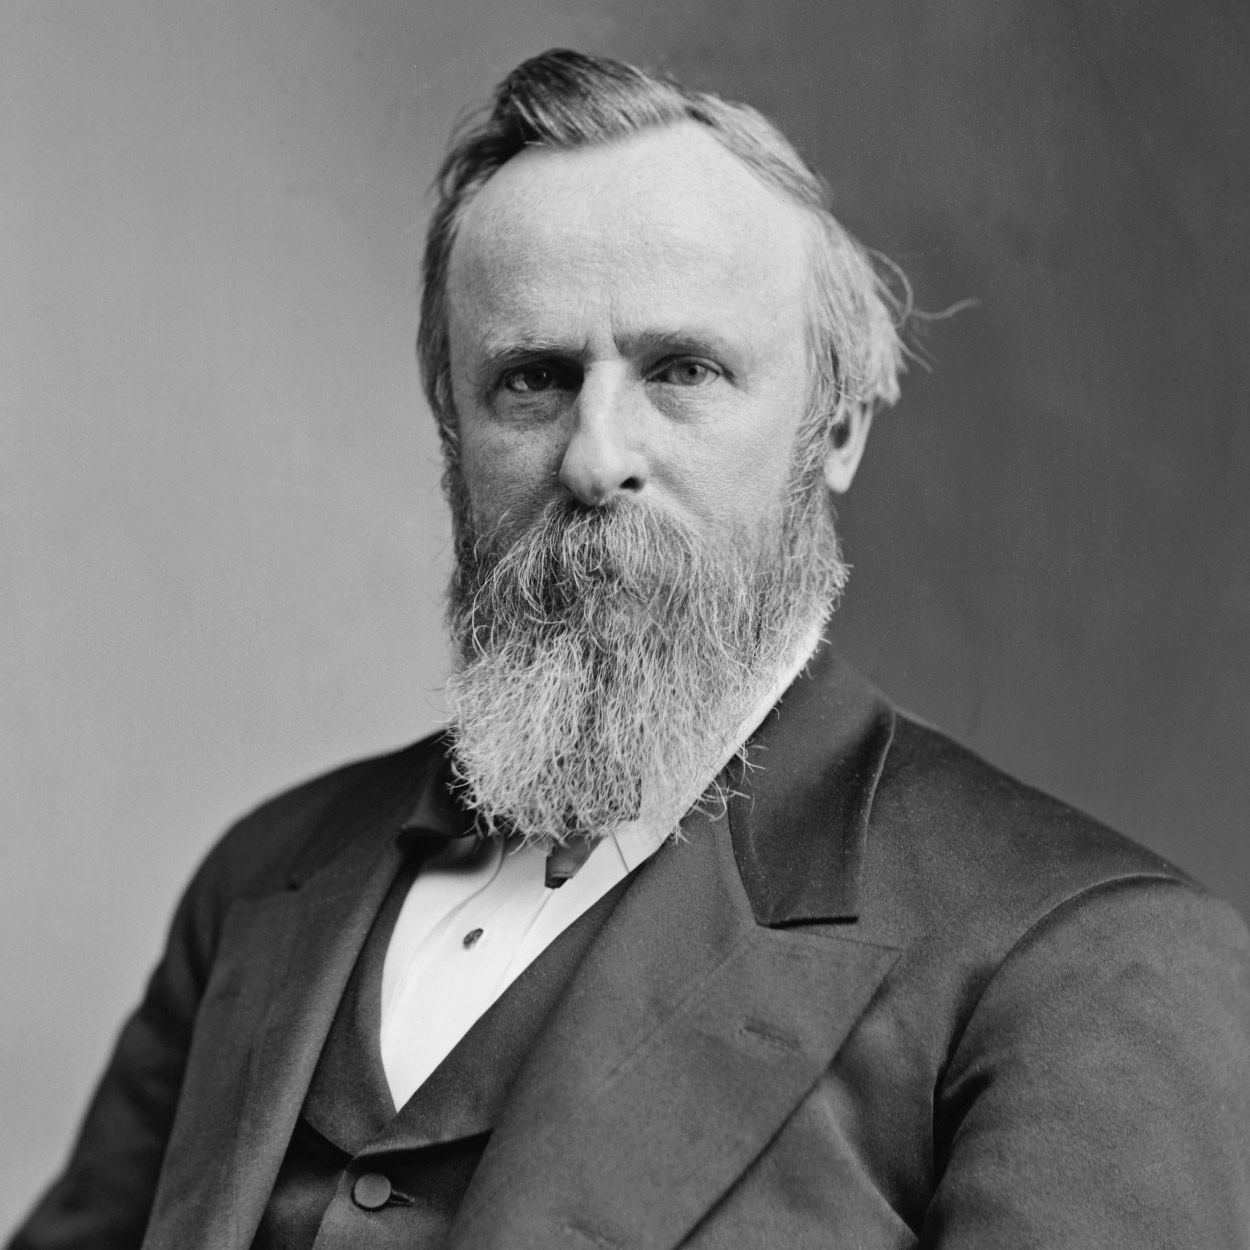 Portrait of Rutherford B. Hayes, the 19th President of the United States